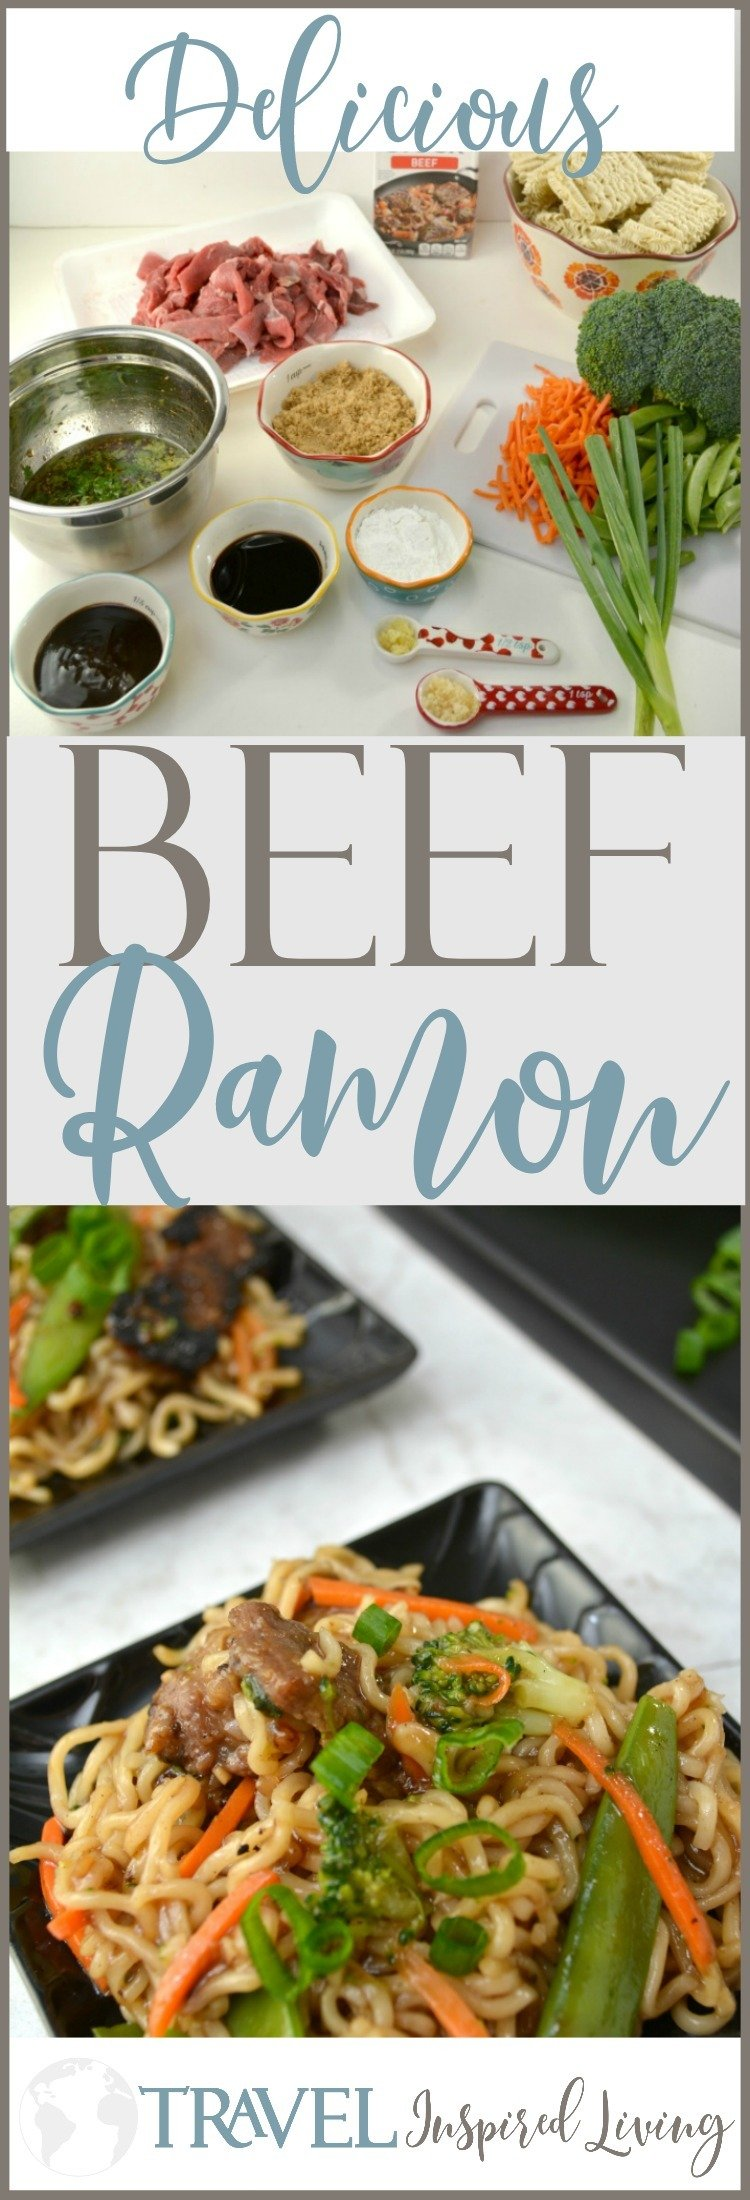 This recipe offers step-by-step directions for a delicious Beef Ramon that you'll crave over and over again.